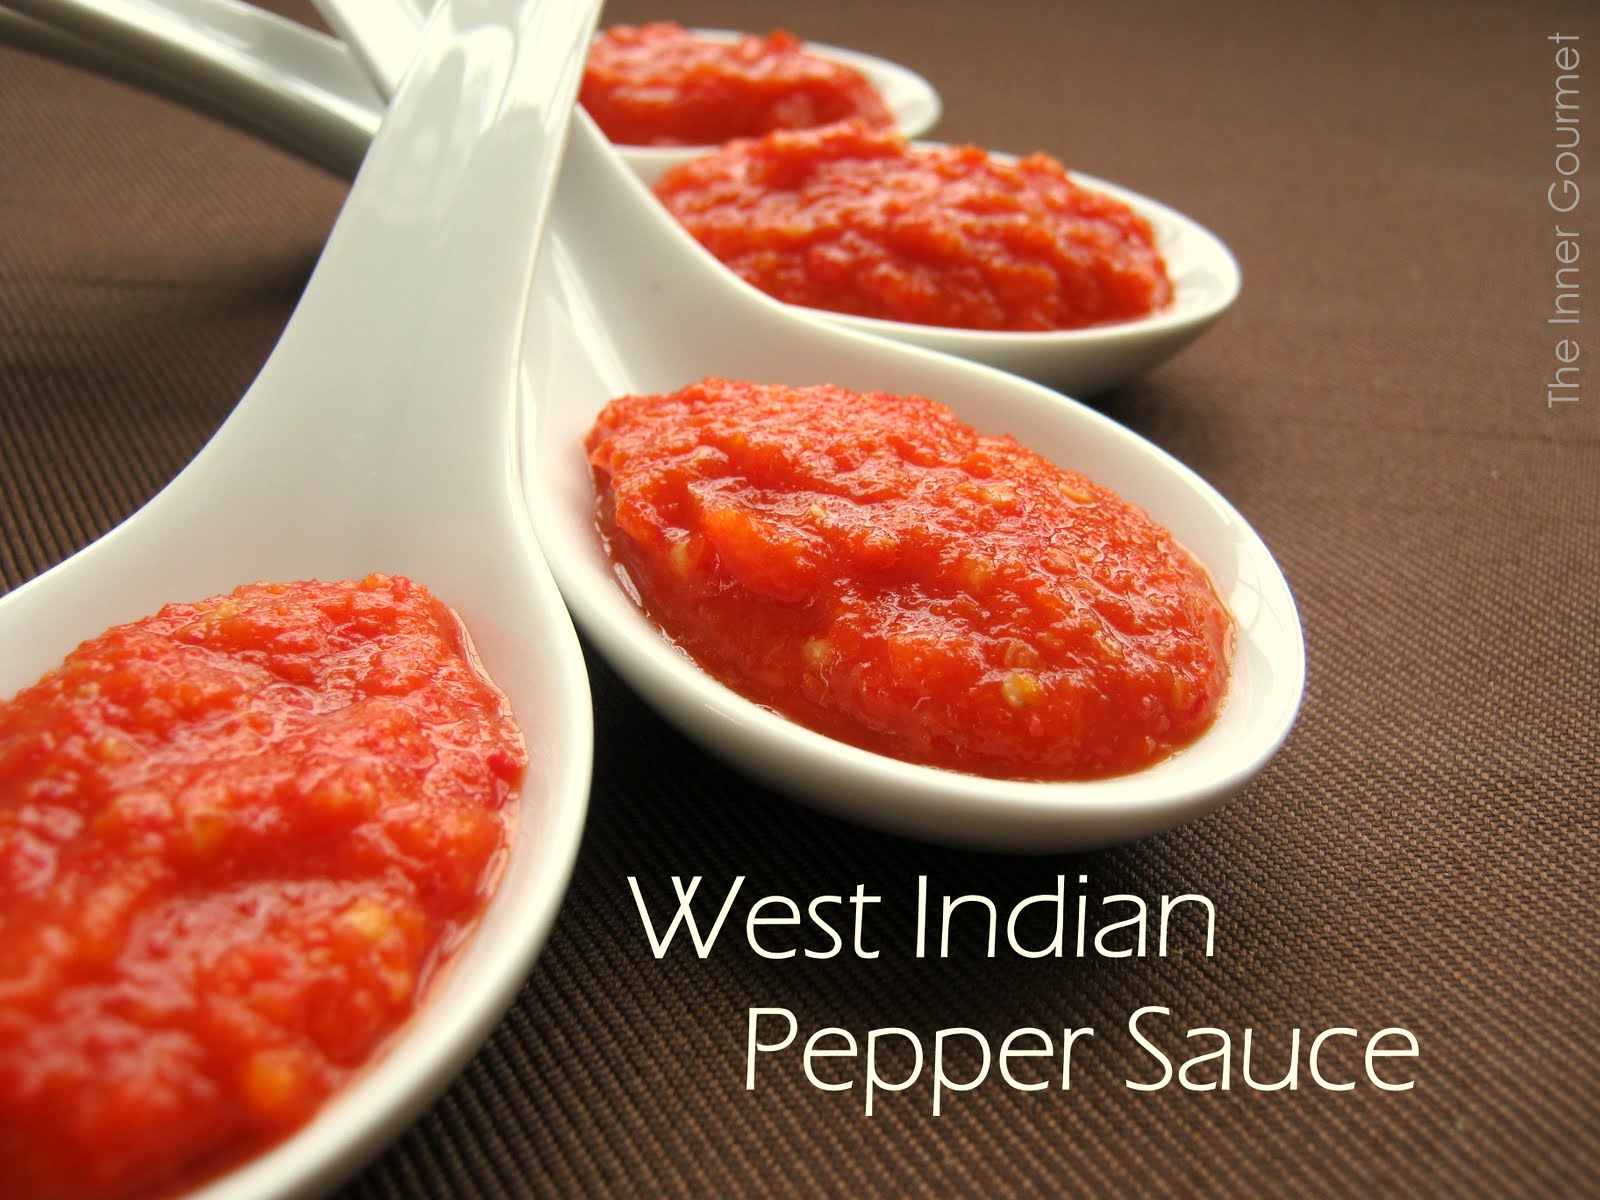 Charming hot pepper sauce recipe commit